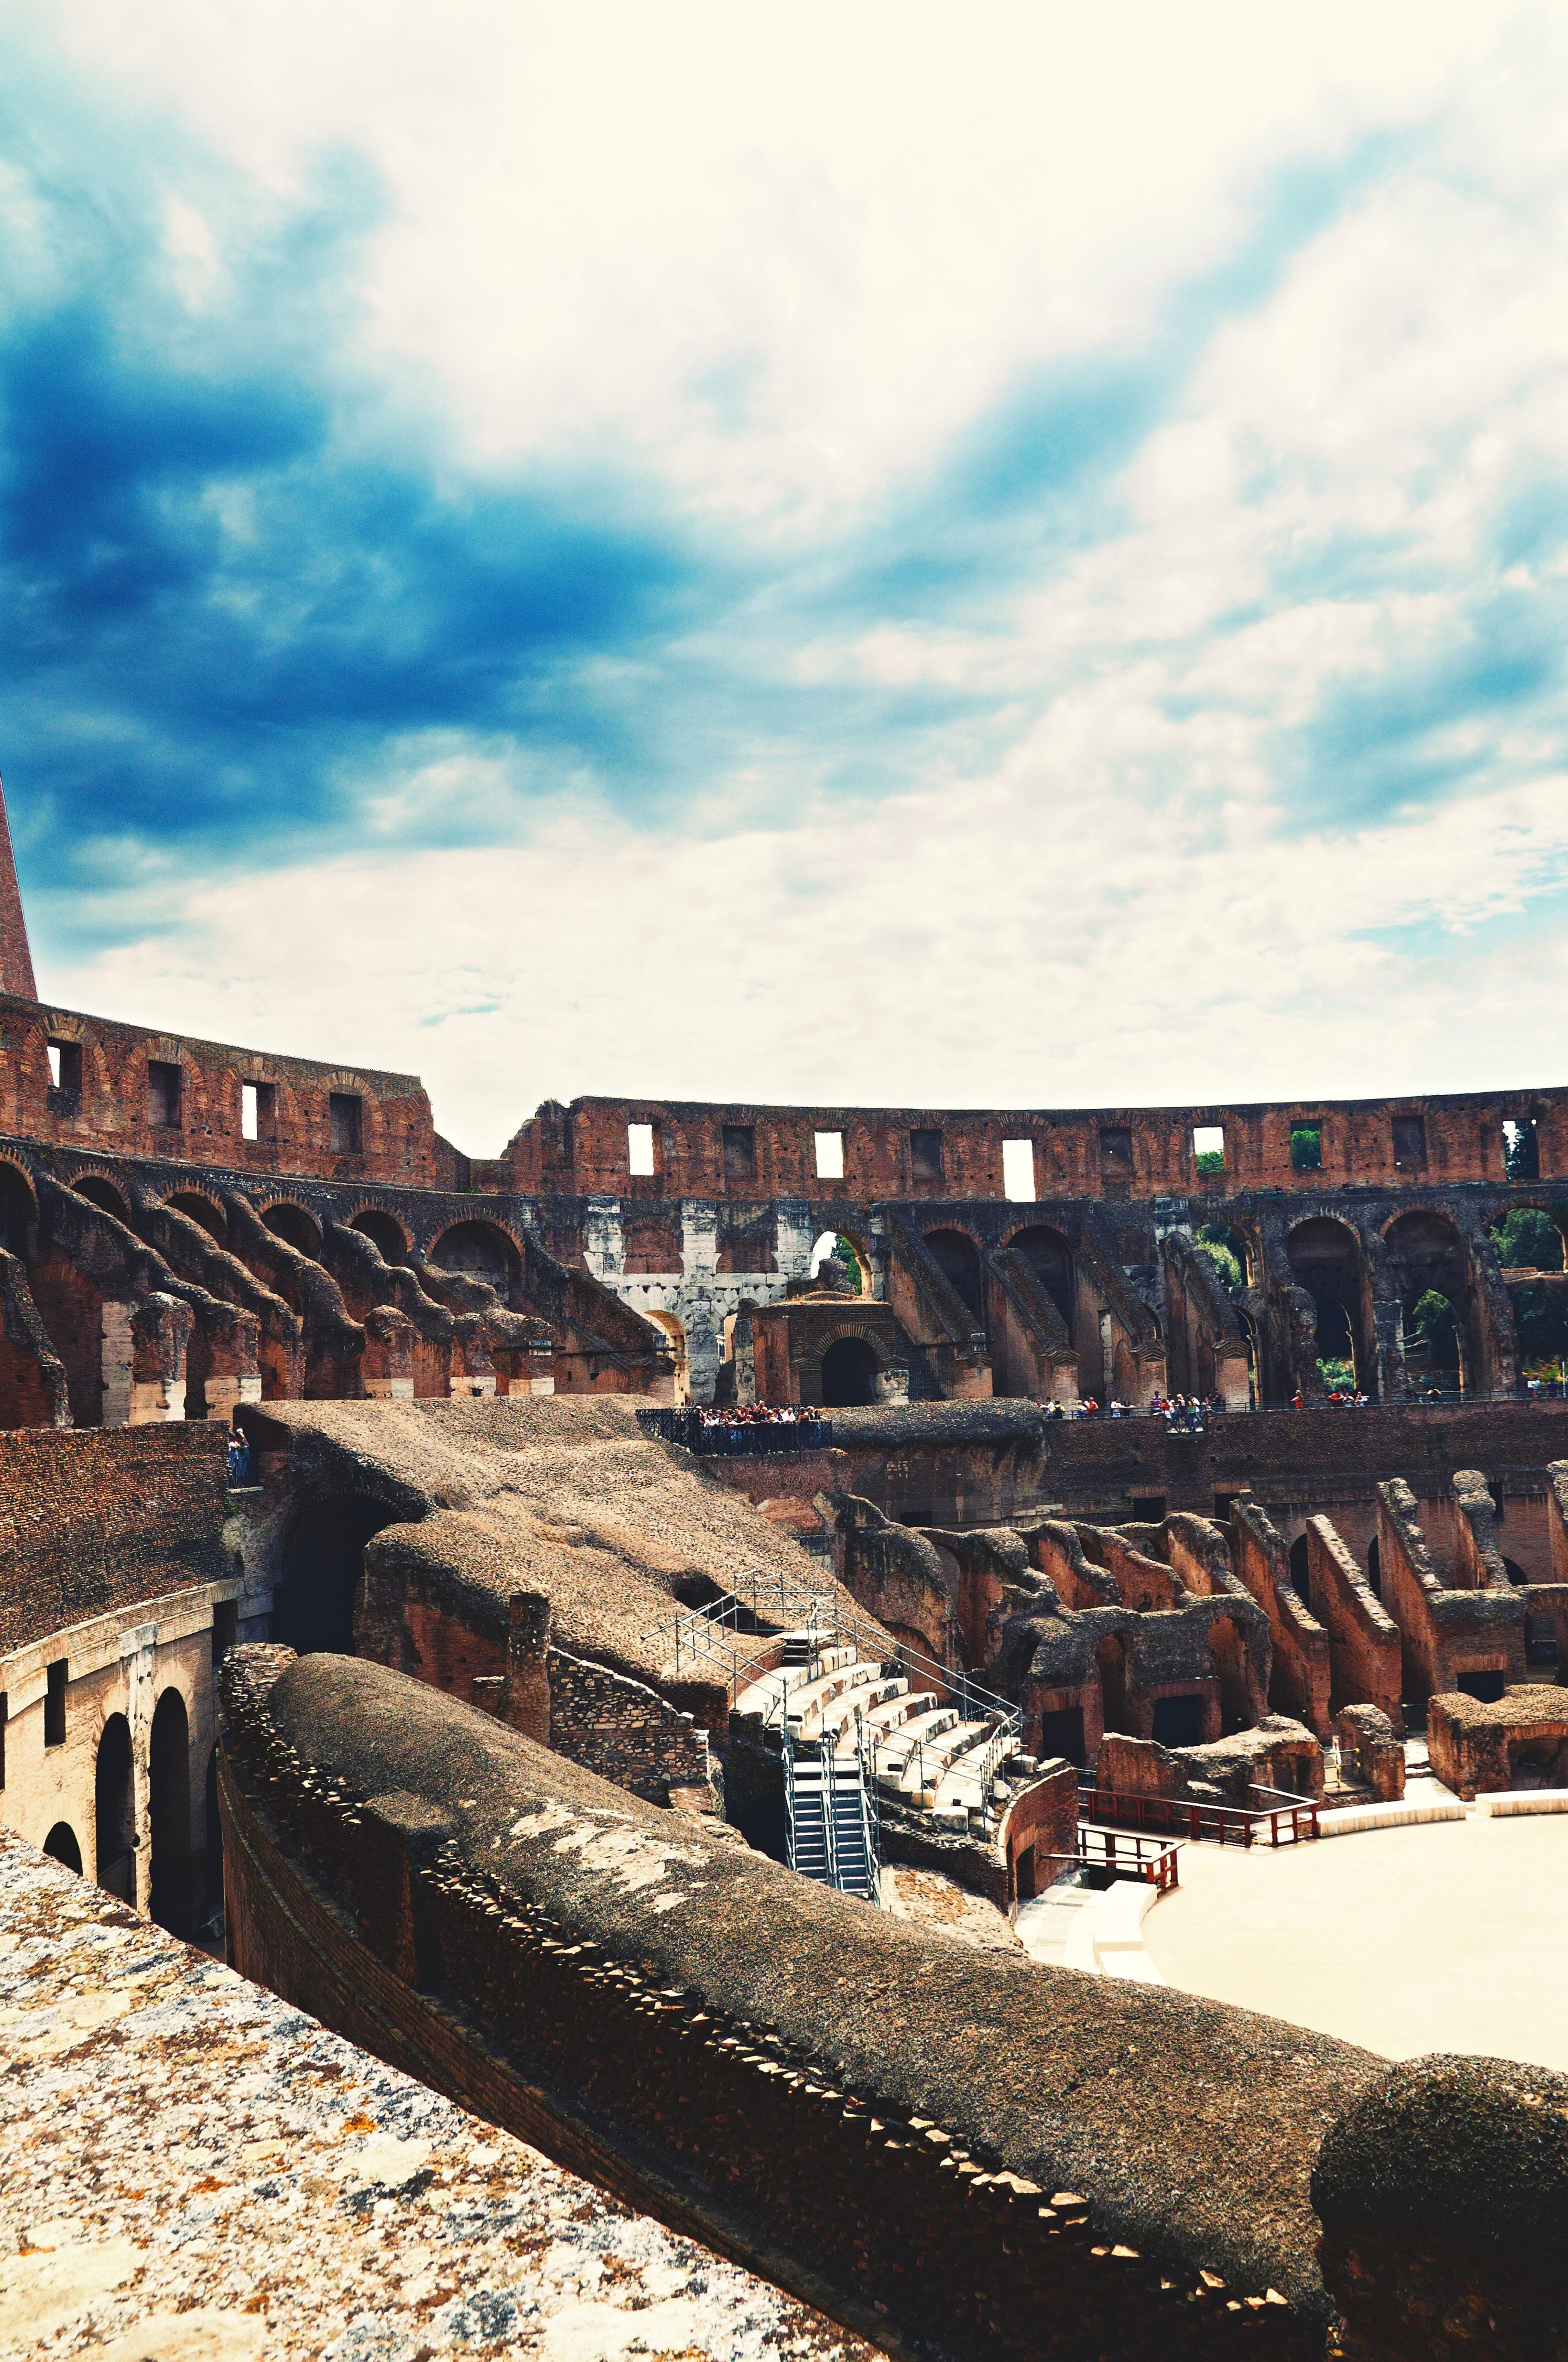 Architecture Built Structure Building Exterior Sky Outdoors Day No People City Colloseo